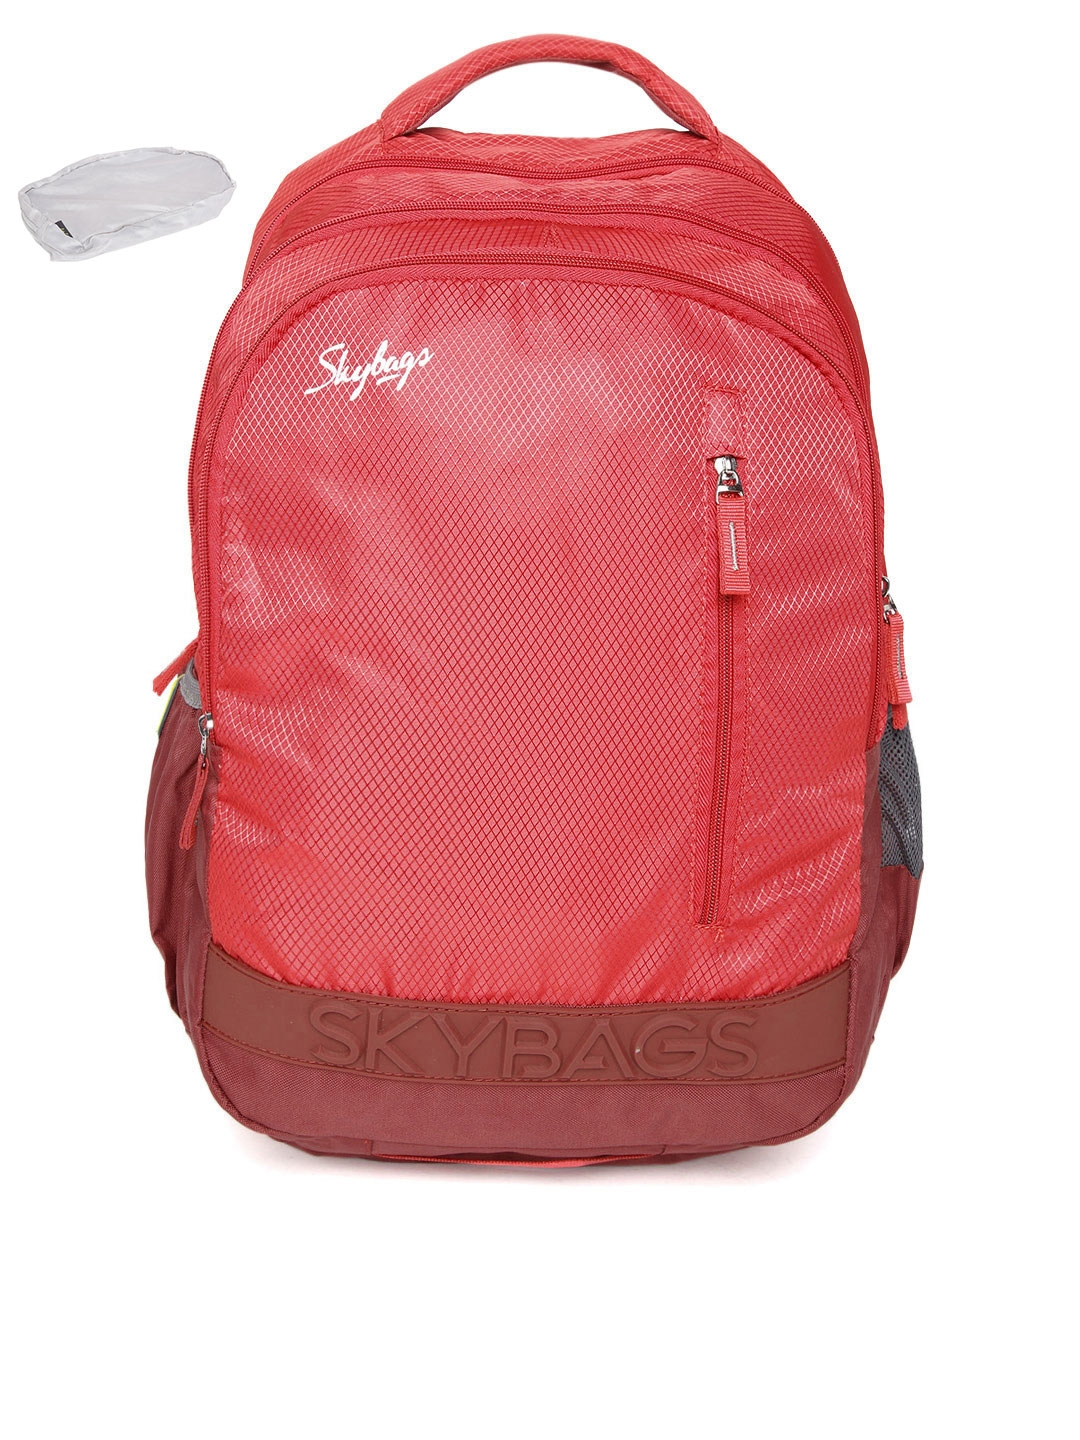 Skybags Unisex Red Textured Backpack